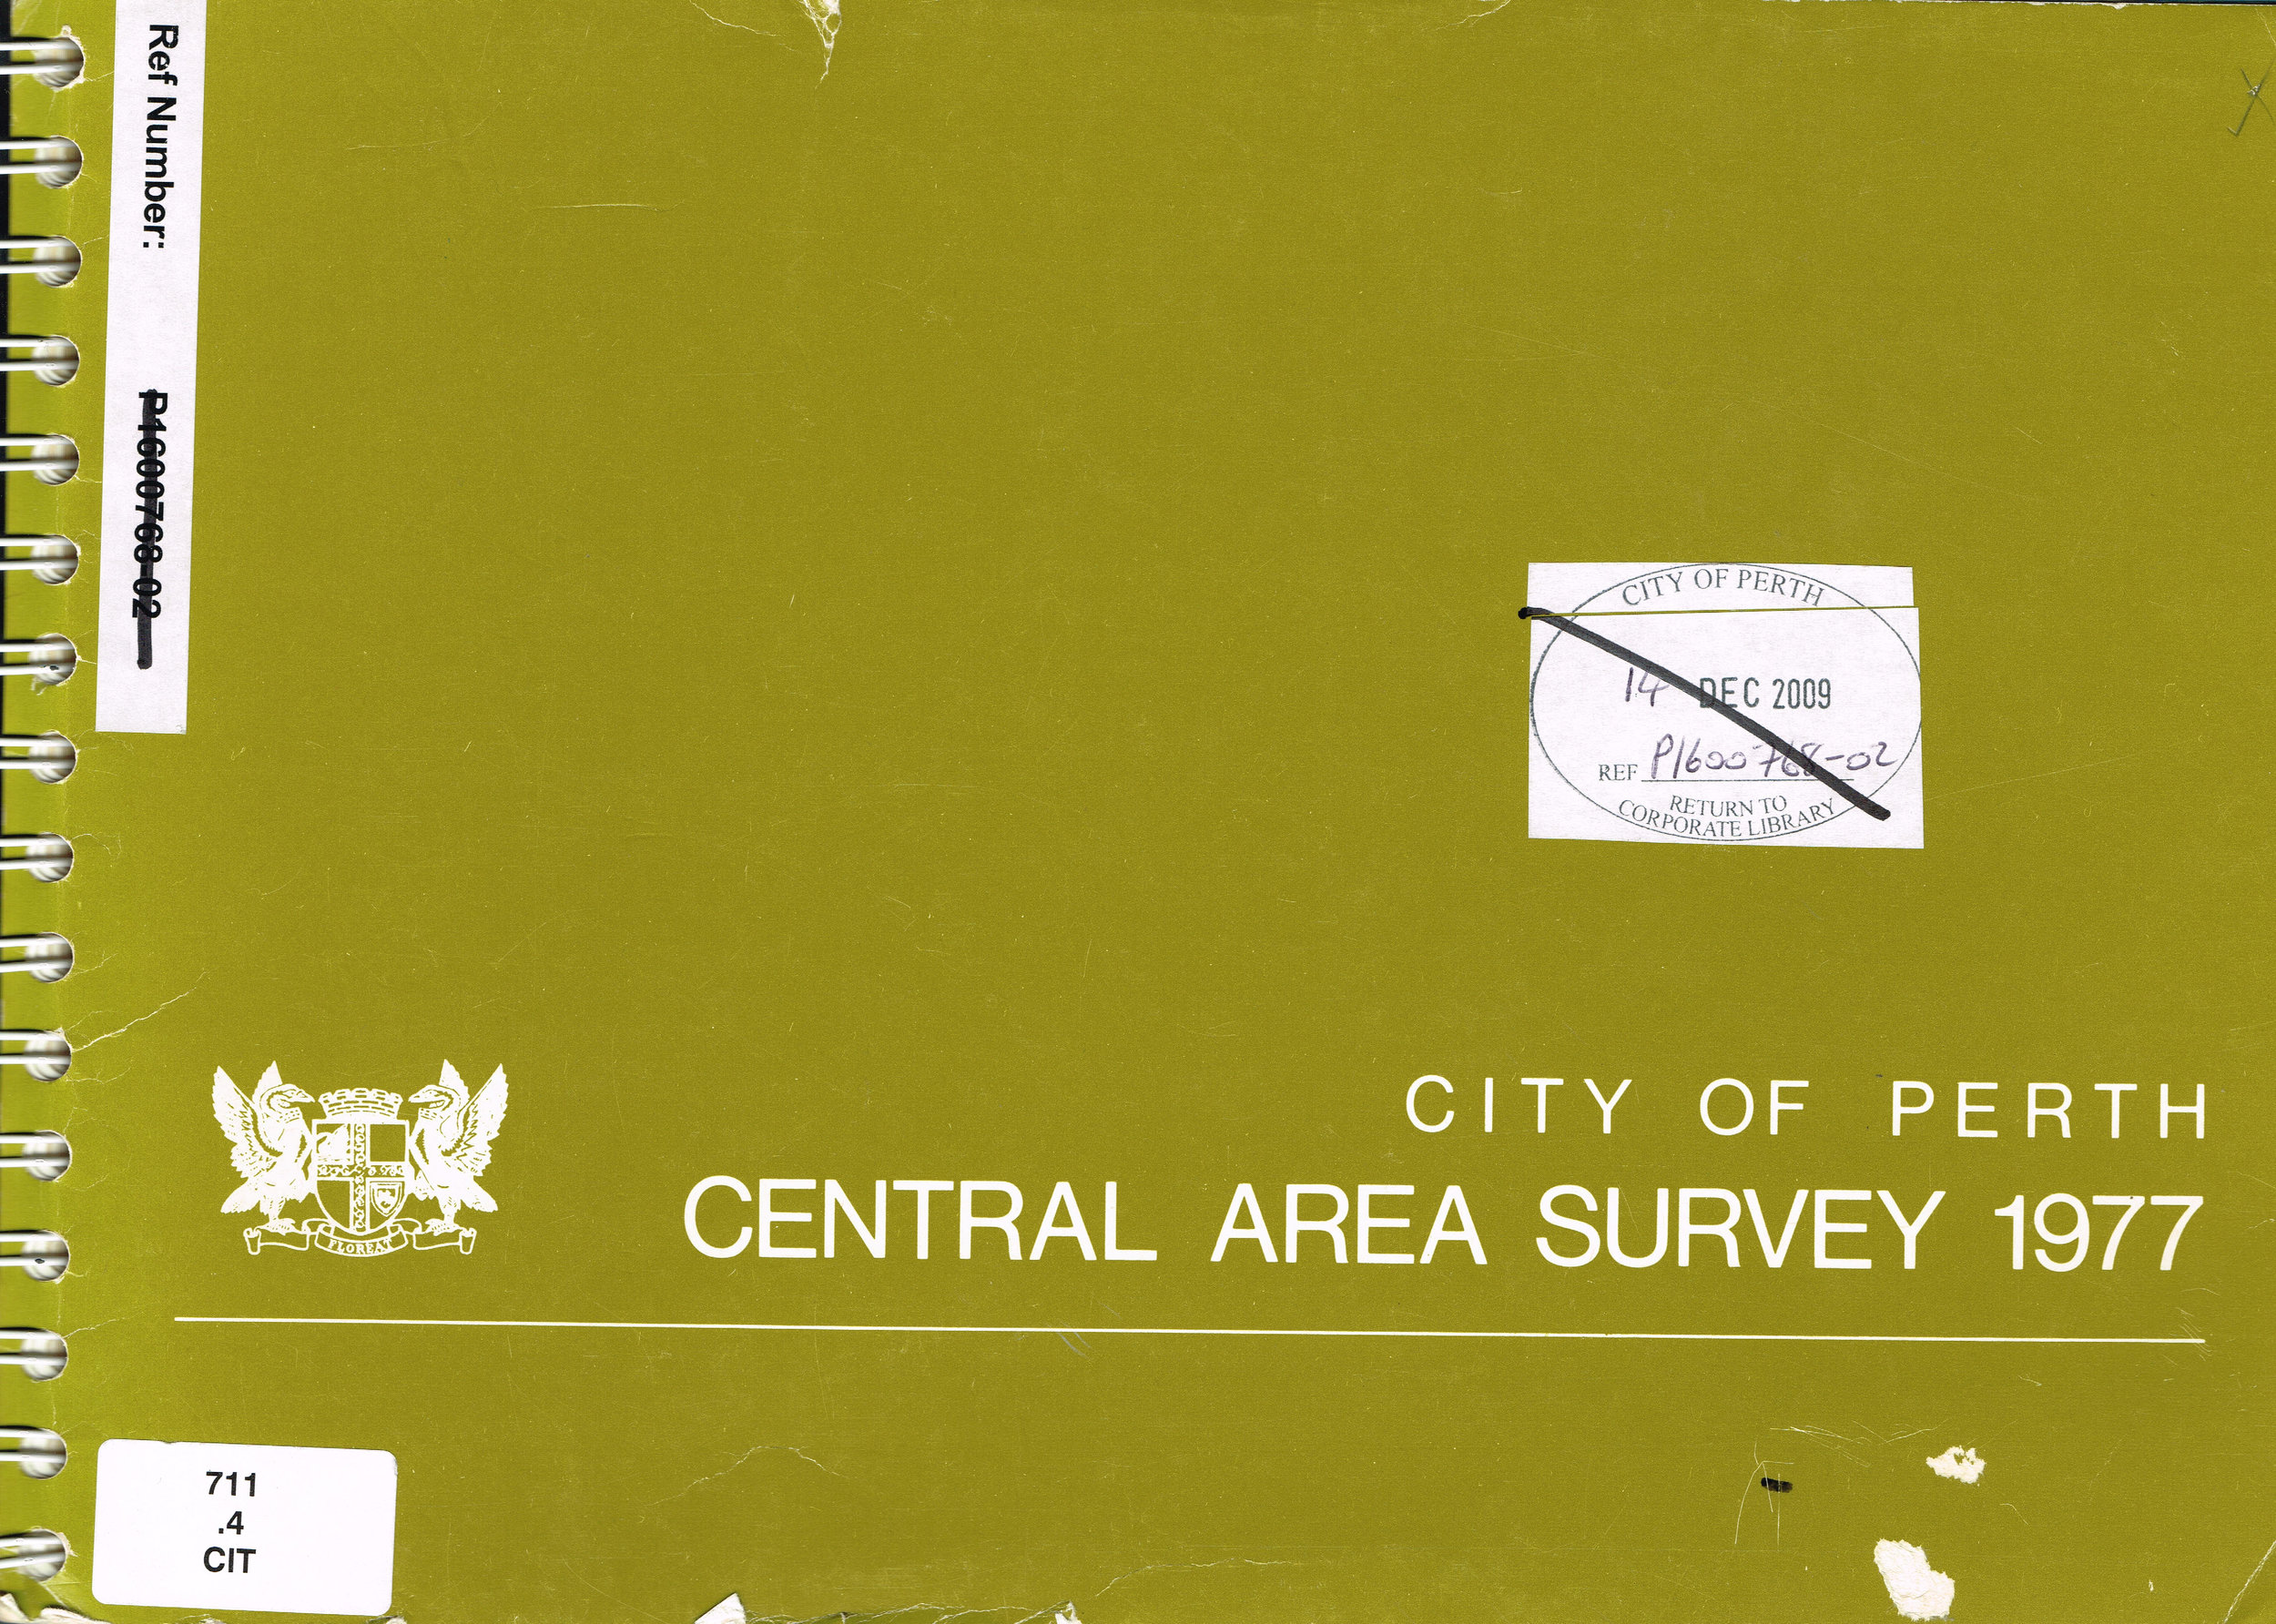 Central Area Survey 1977  City of Perth